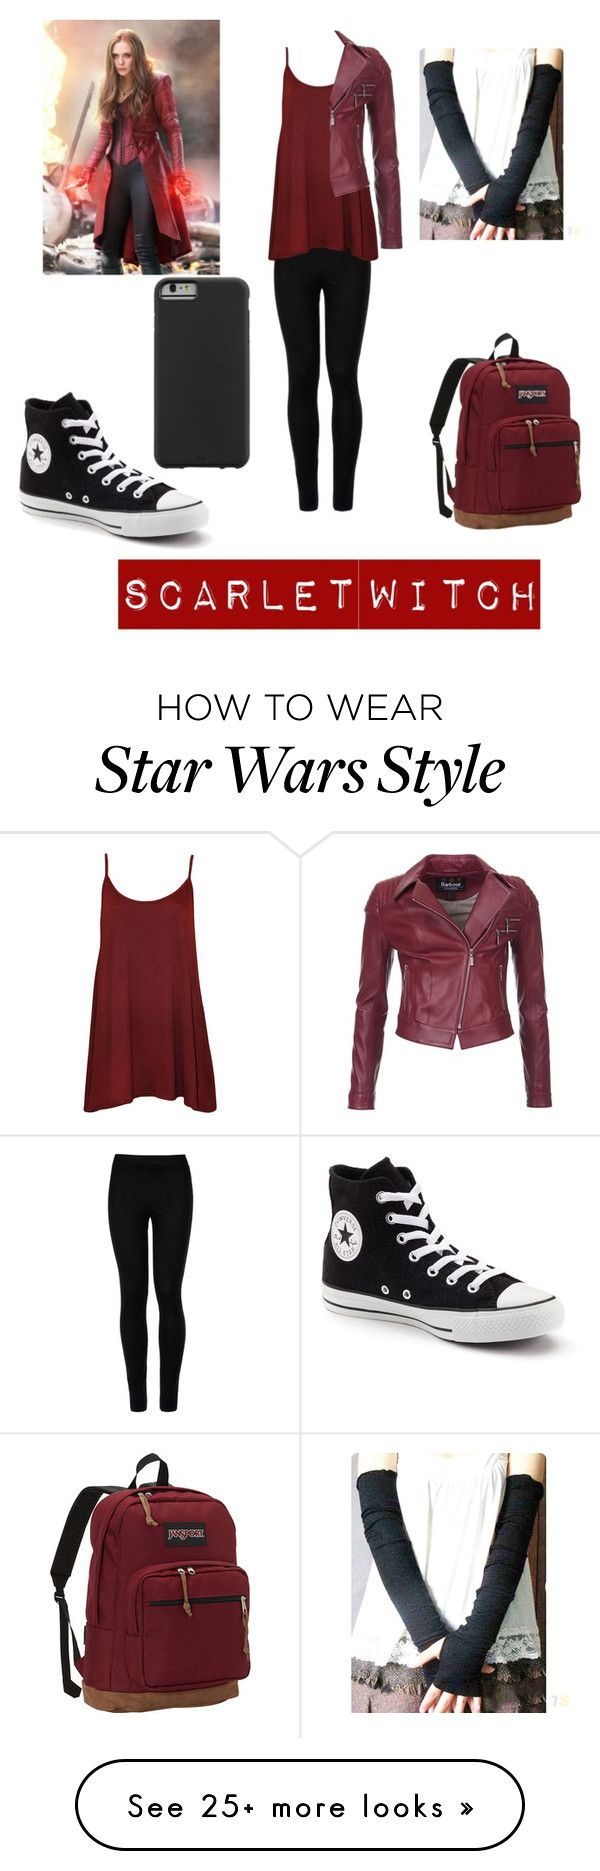 """Scarlet witch as a Teenager"" by xxgodslittleartistxx on Polyvore featuring Wolford, WearAll, Barbour International, JanSport, Converse and Case-Mate"